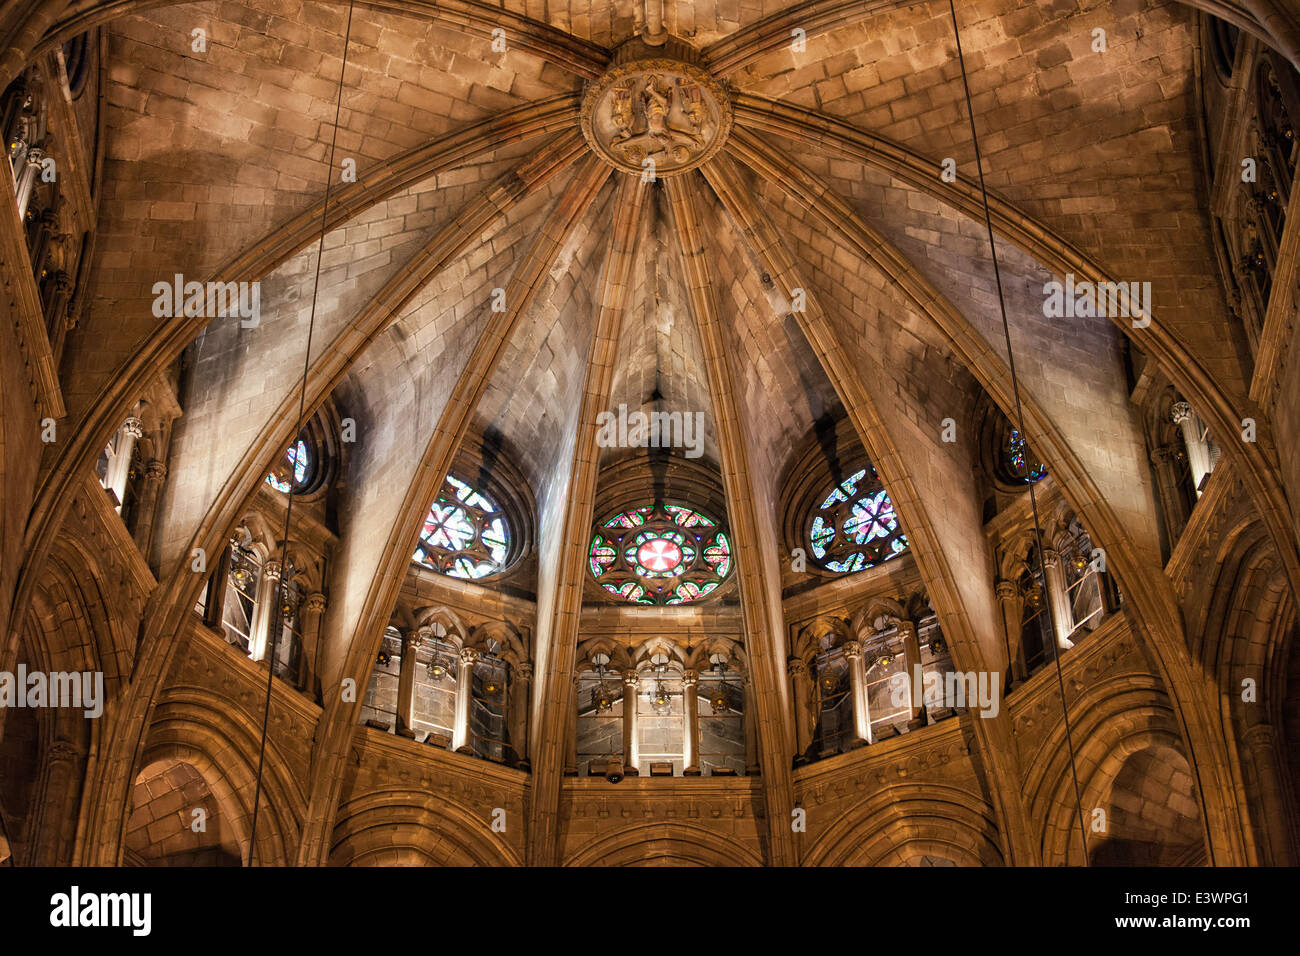 Gothic Ribbed Vault Of The Apse In Barcelona Cathedral Catalonia Spain